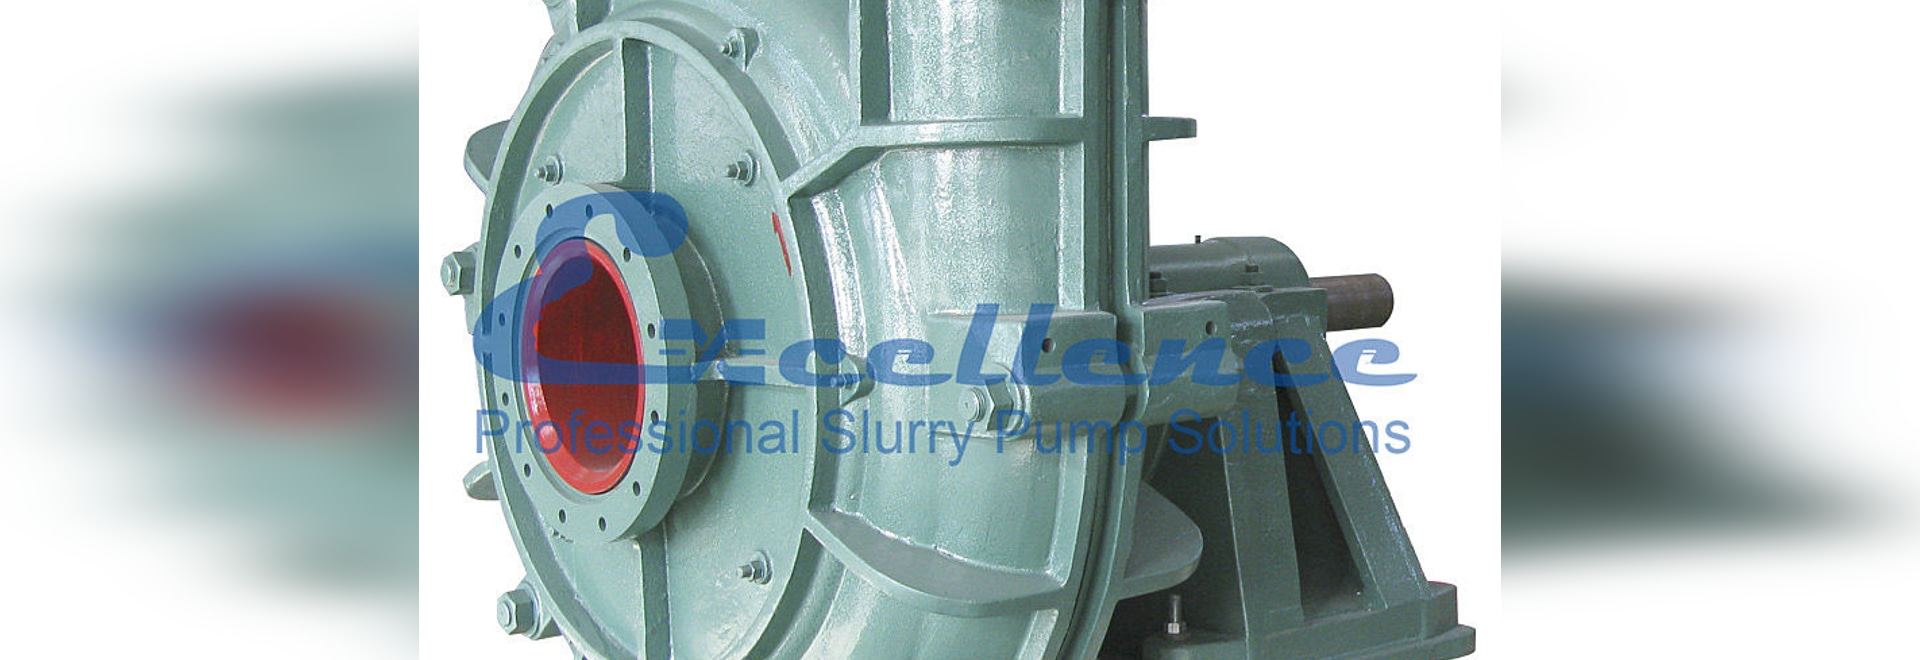 Anti-abrasive Centrifugal Slurry Pump for mining and dredging